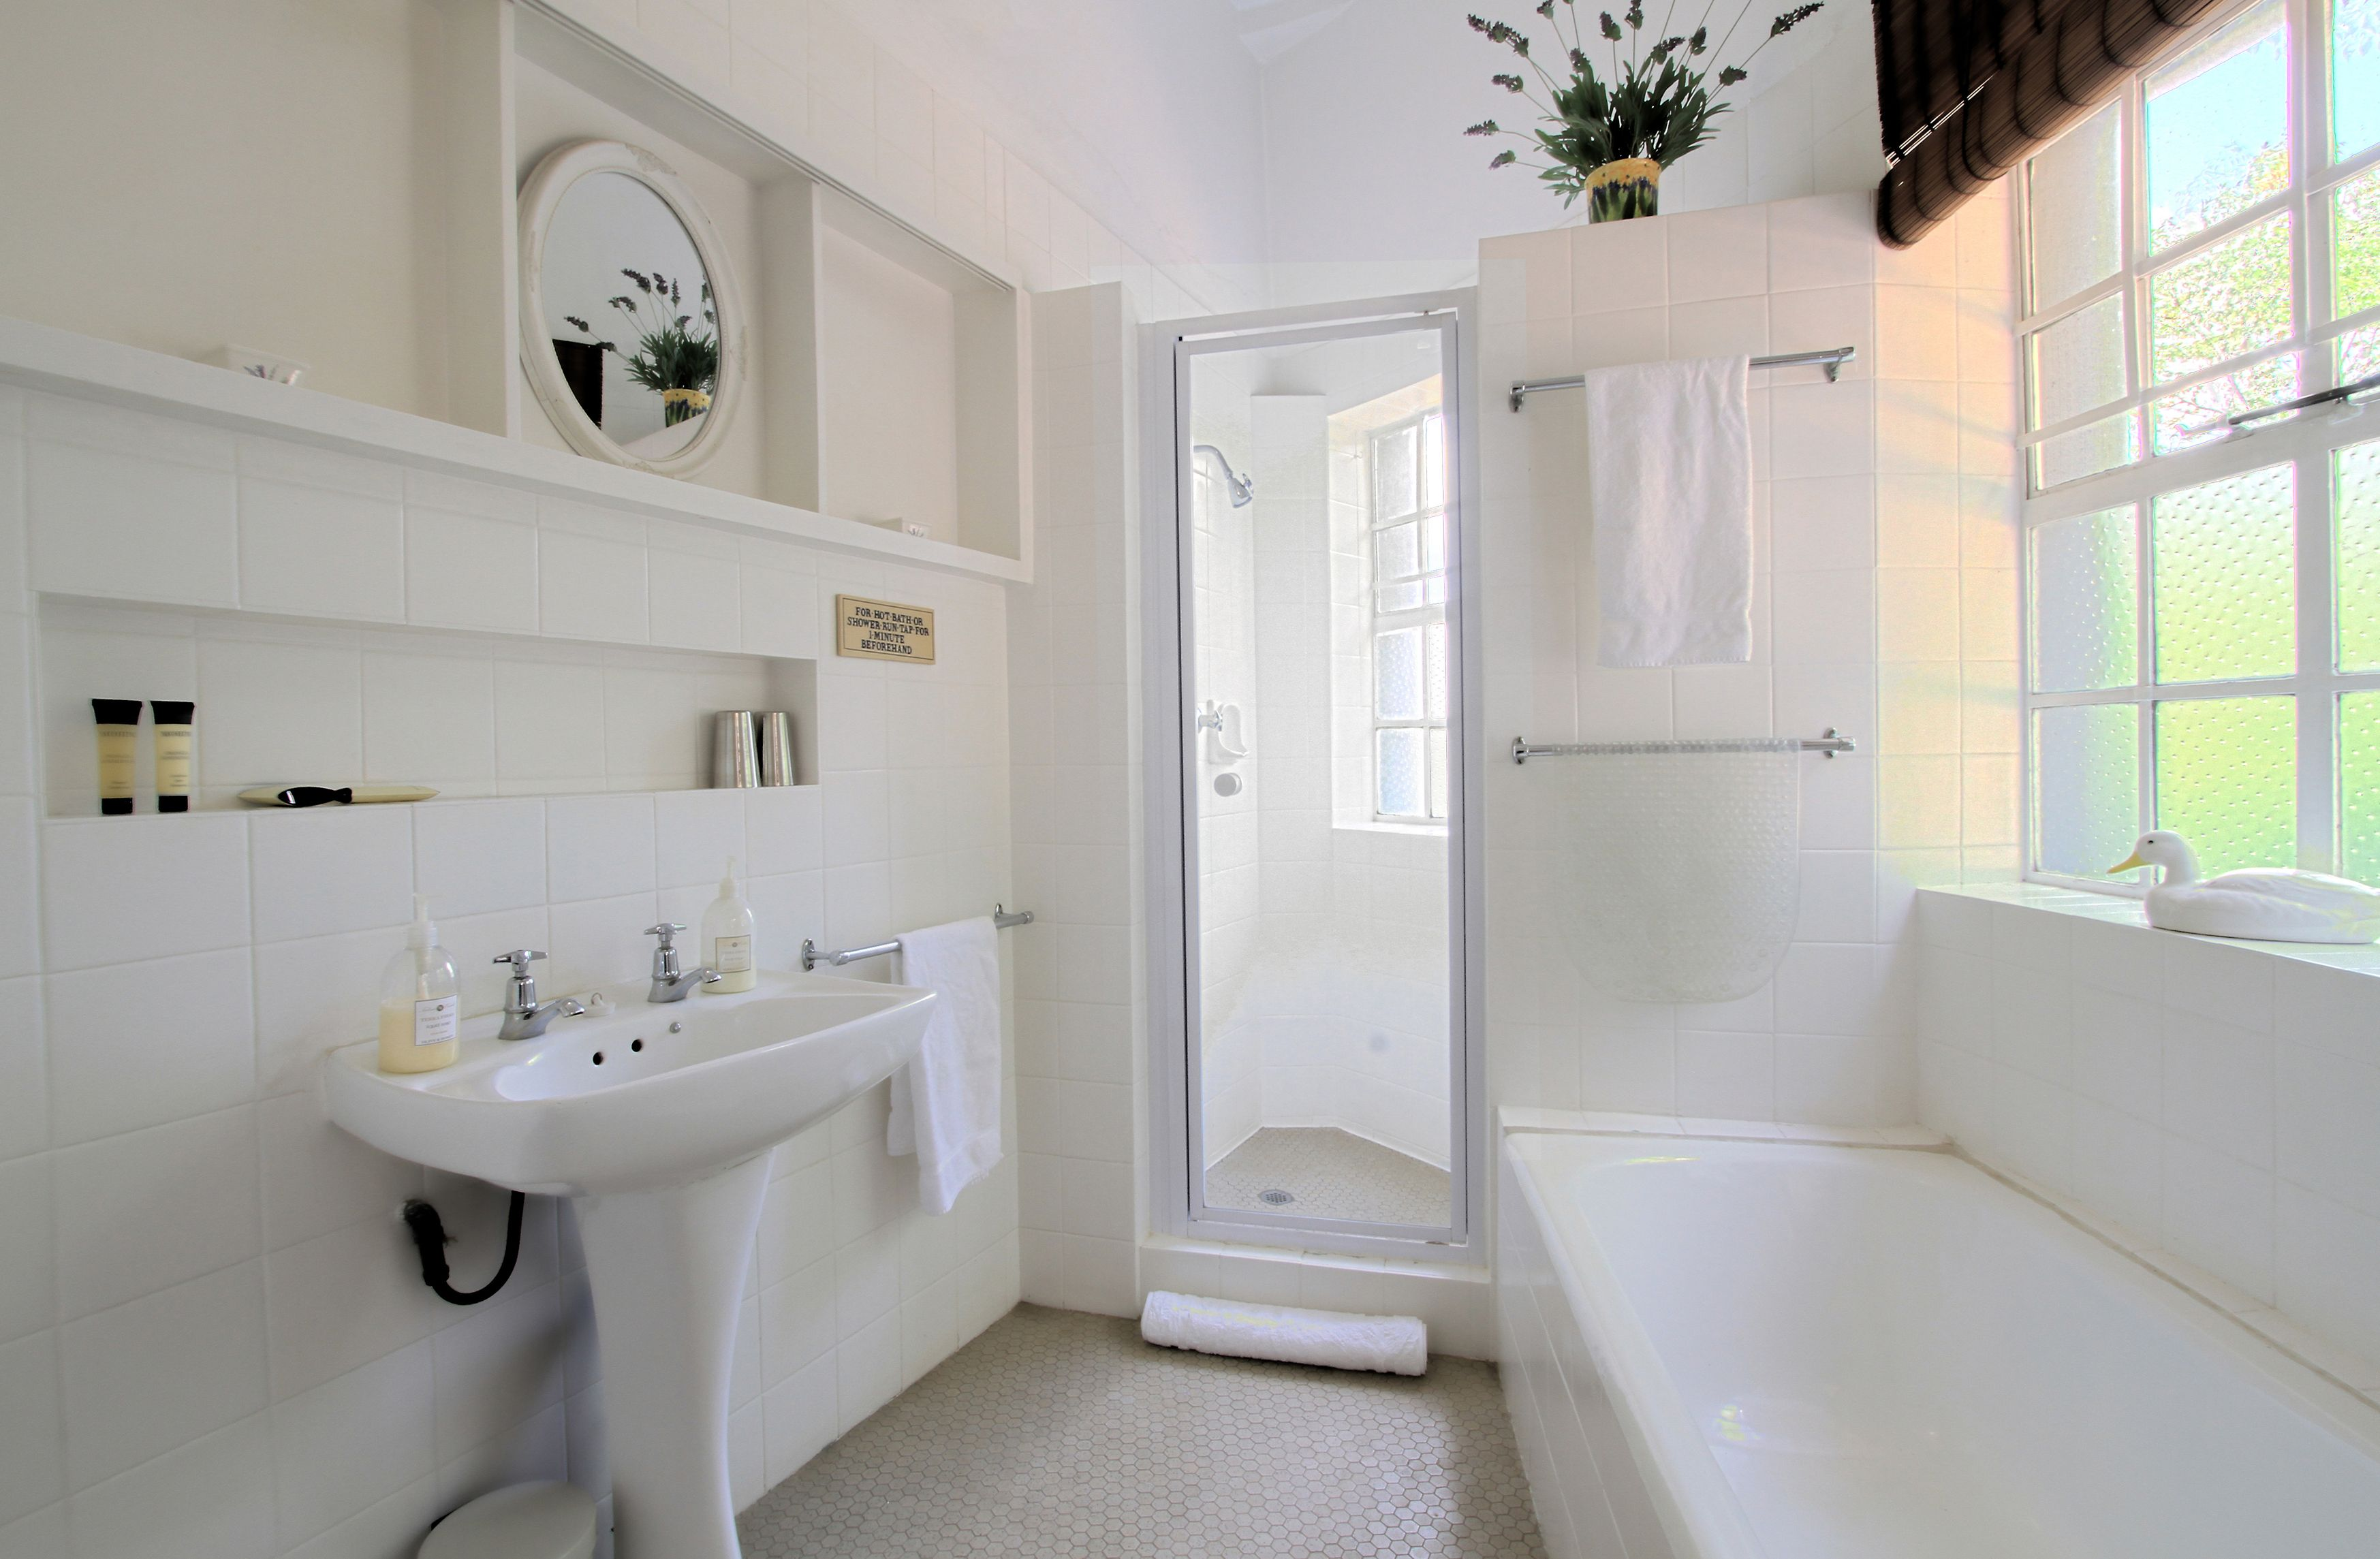 We love the white and off white color in this cozy little bathroom. www.PrestigePaints.com